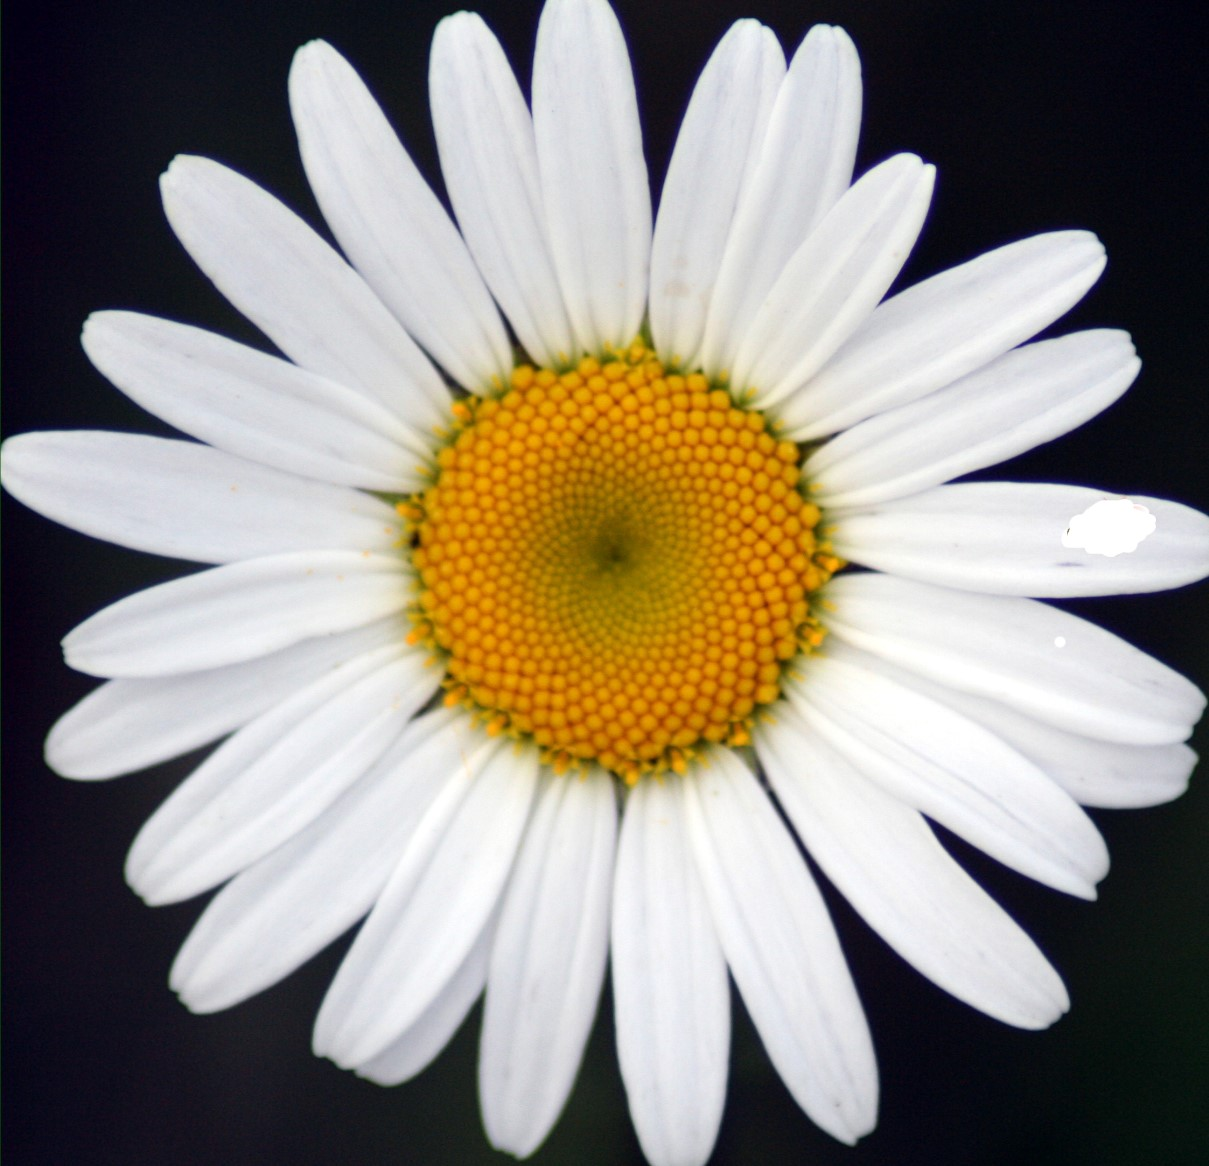 He loves me he loves me not good better best love we all know of the game taking a daisy and plucking the petals one by one saying he loves me then he loves me not with the alternating petals izmirmasajfo